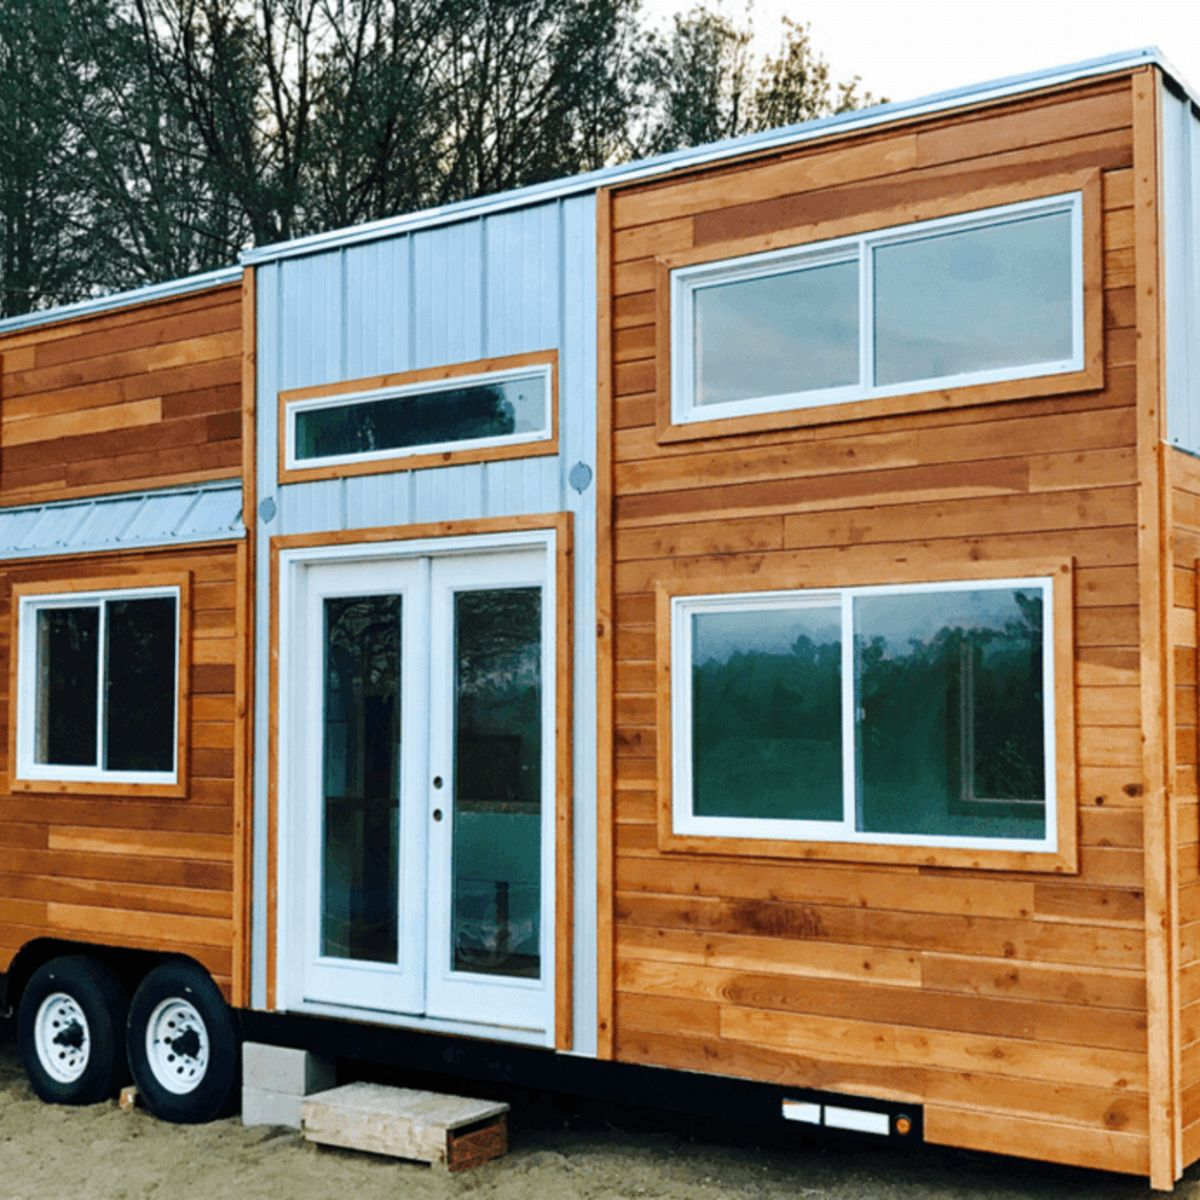 Mammoth Tiny Home, By The Zen Cottages